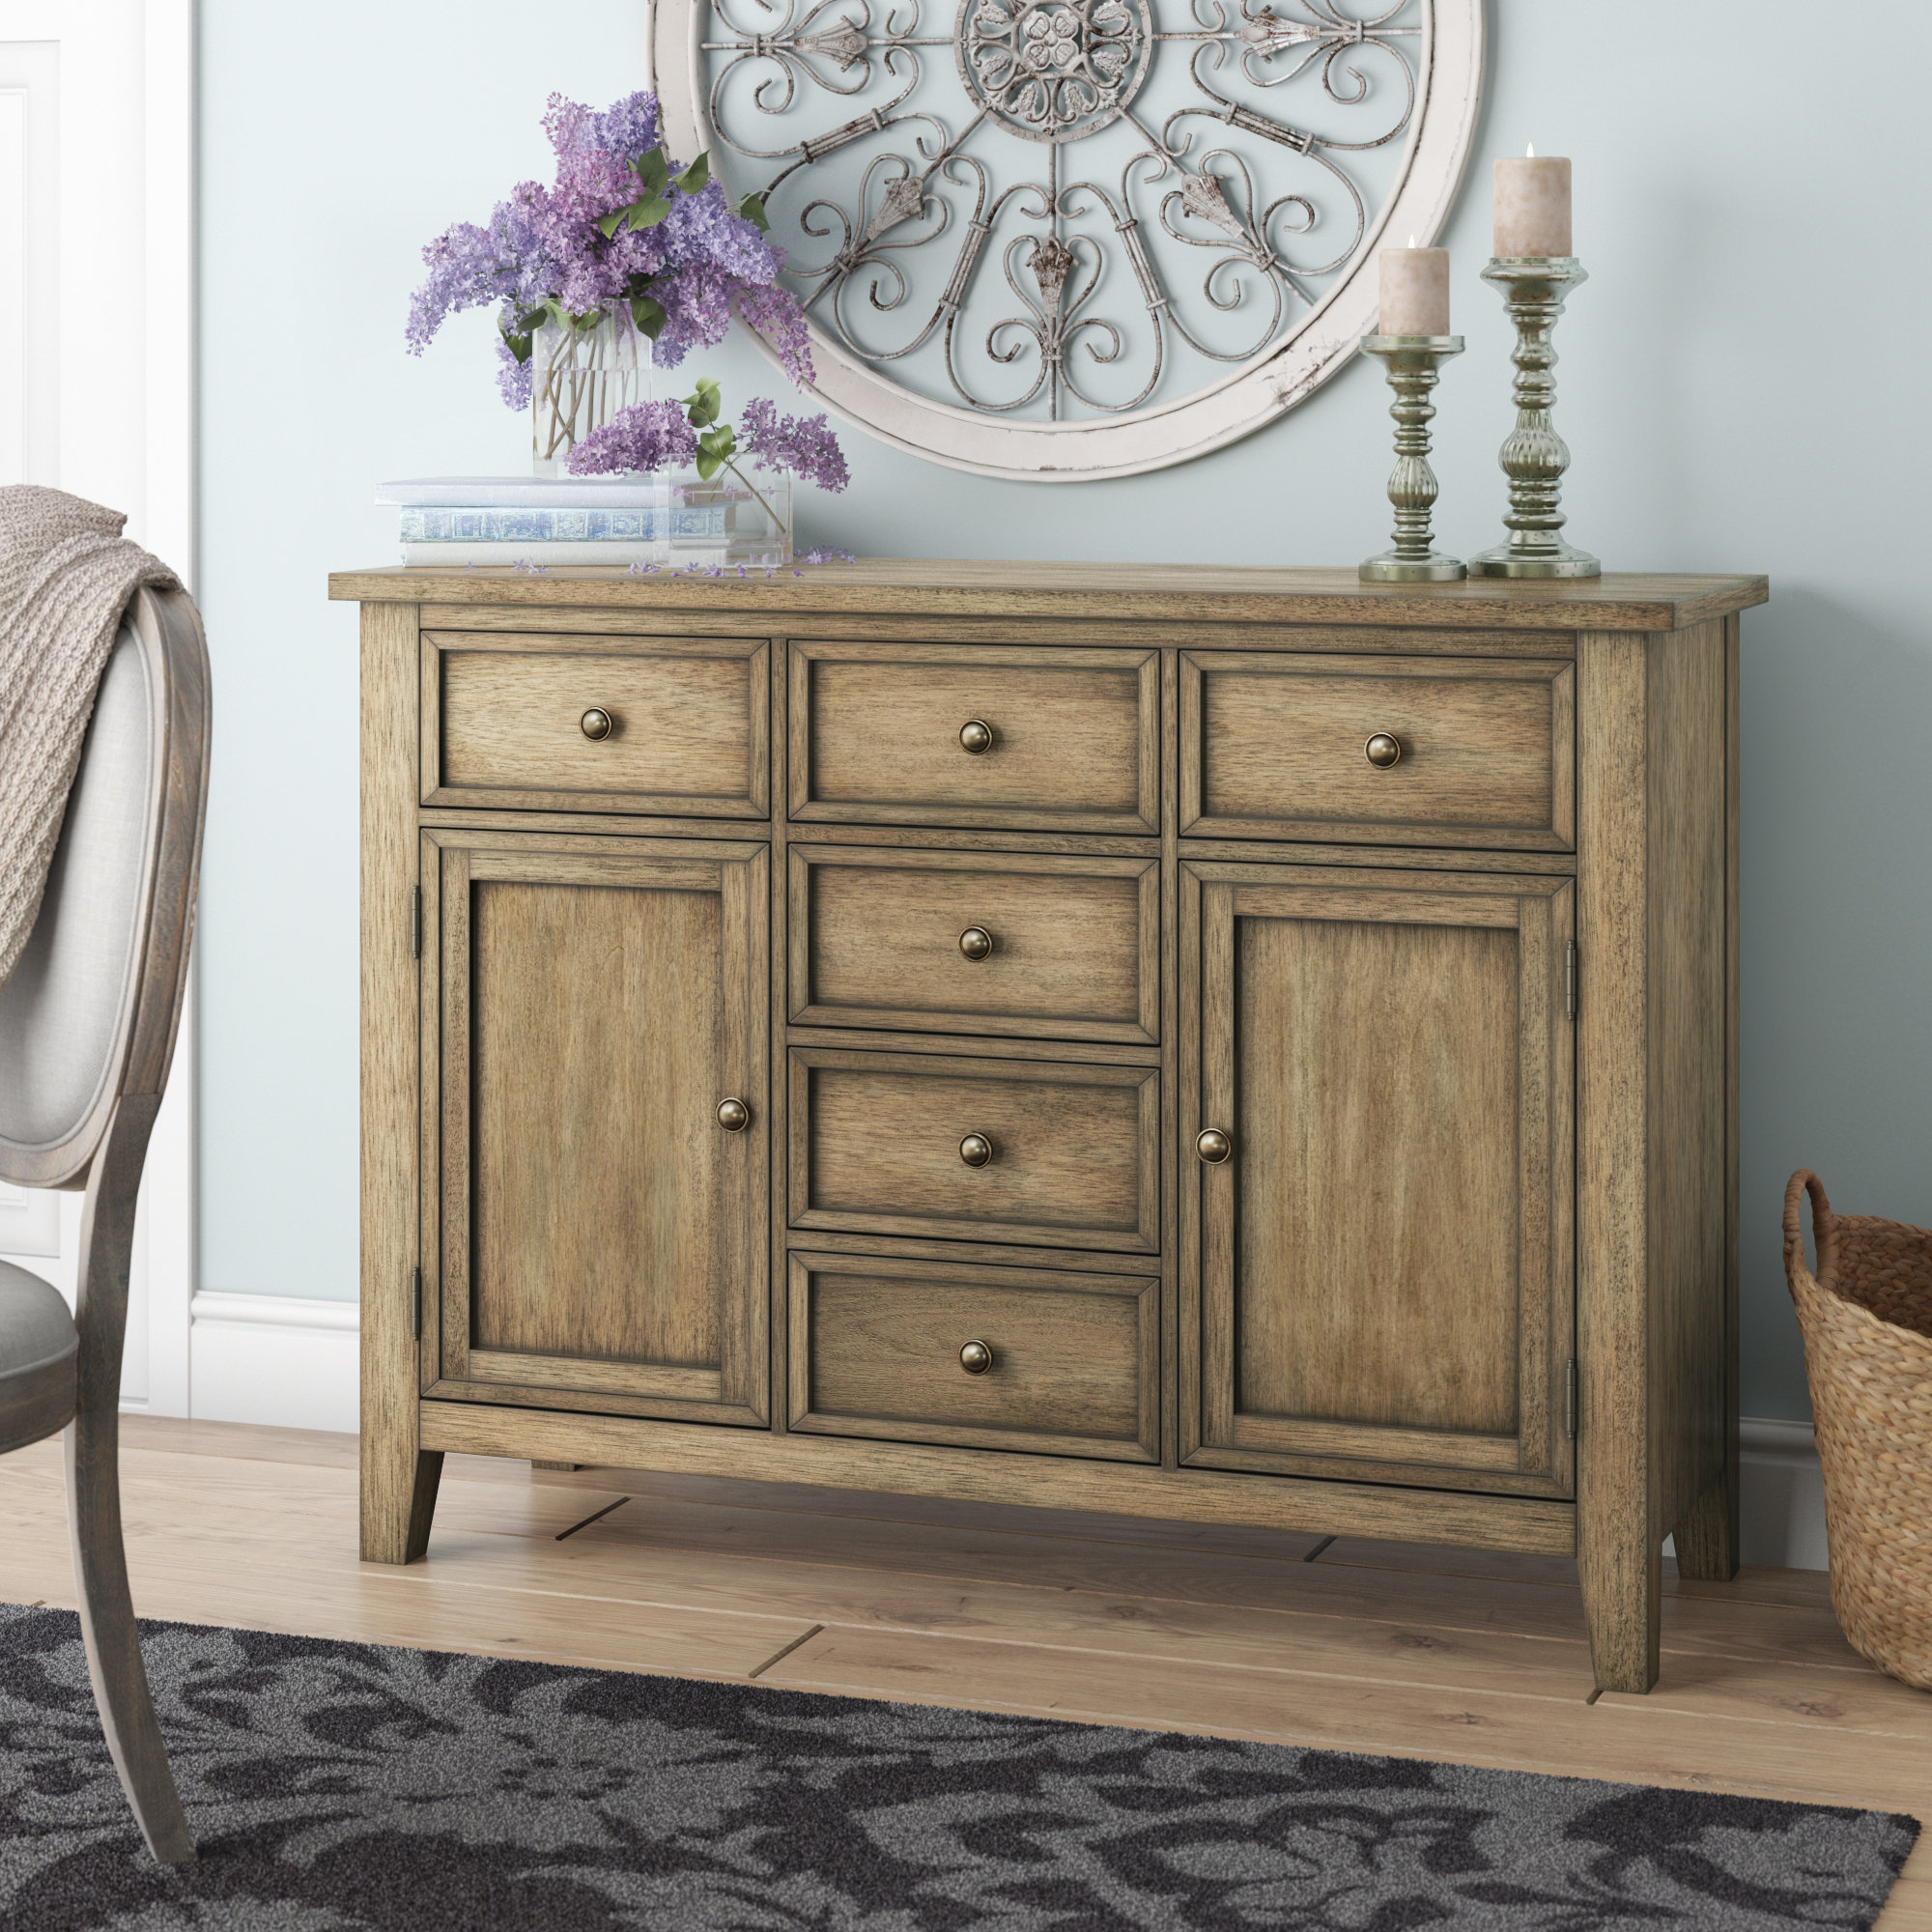 French Country Sideboards & Buffets You'll Love In 2019 For Deville Russelle Sideboards (View 20 of 20)